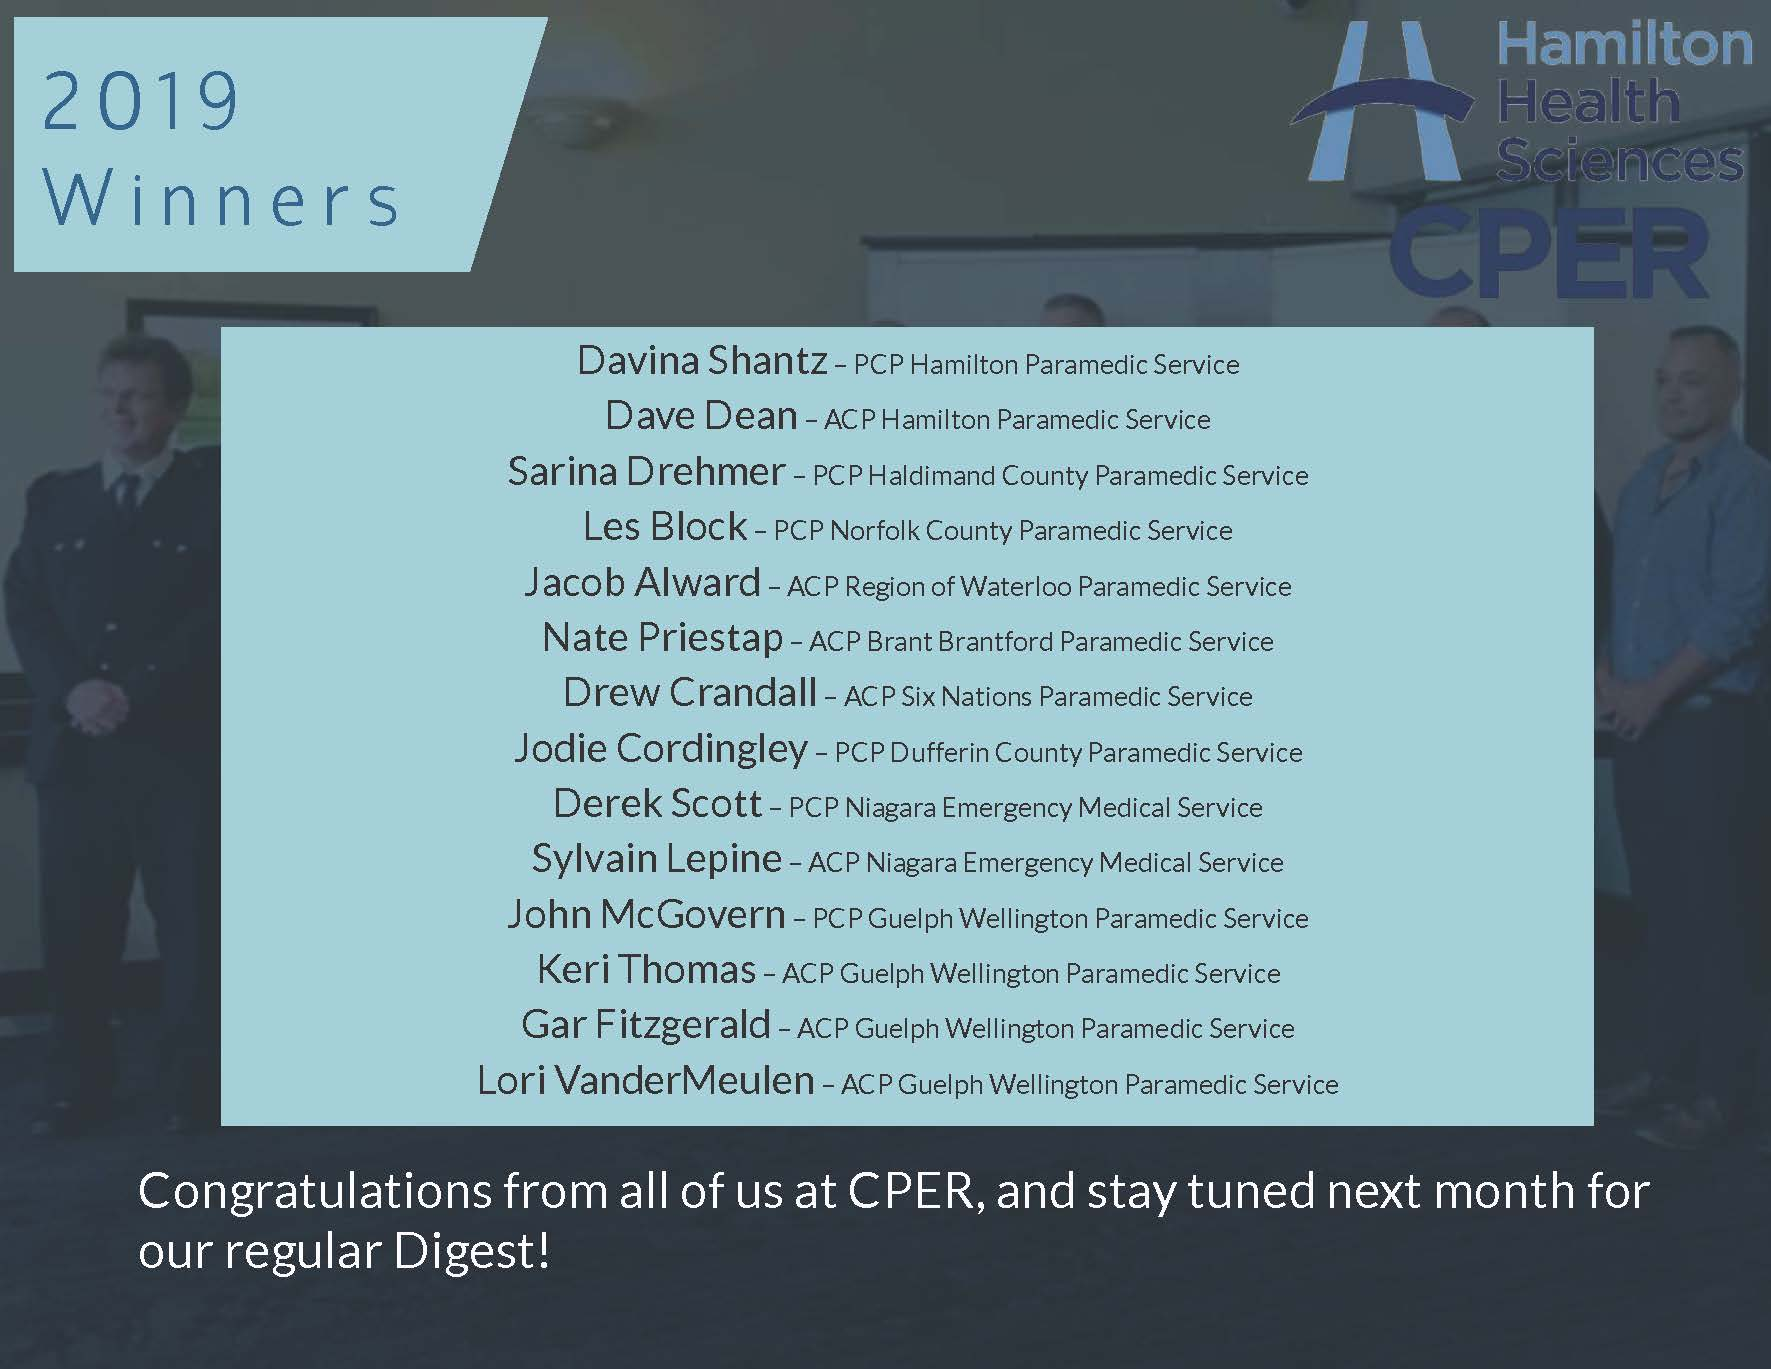 CPER Digest June 2019 QoC Awards Page 2